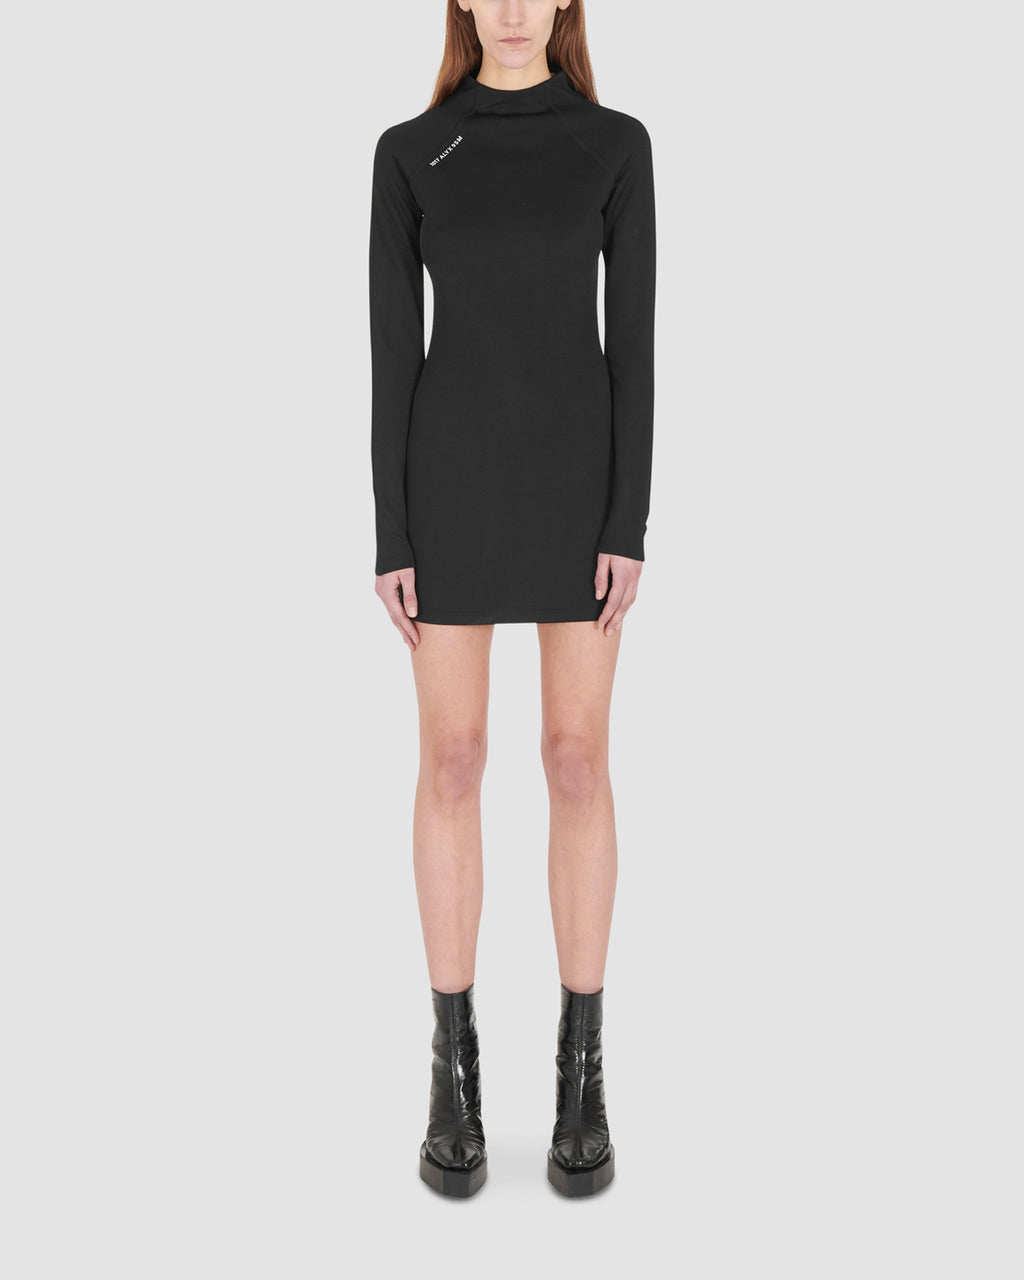 LONG SLEEVE TECH DRESS PRE-ORDER